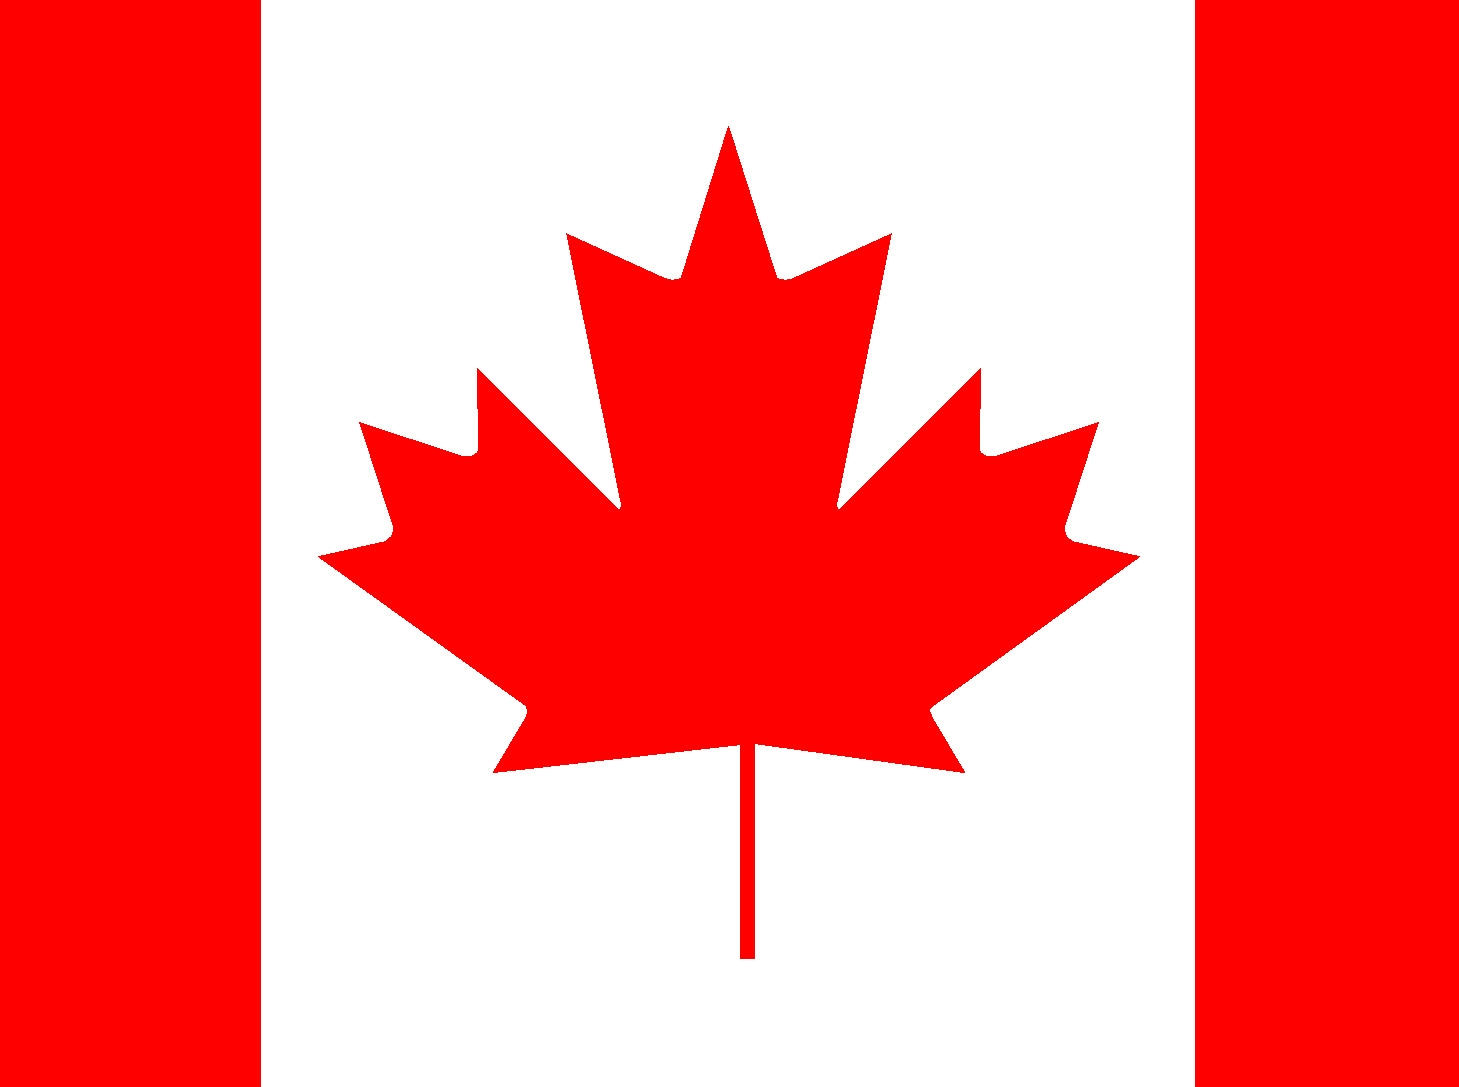 Canadian Flag Canada Photo 729710 Fanpop